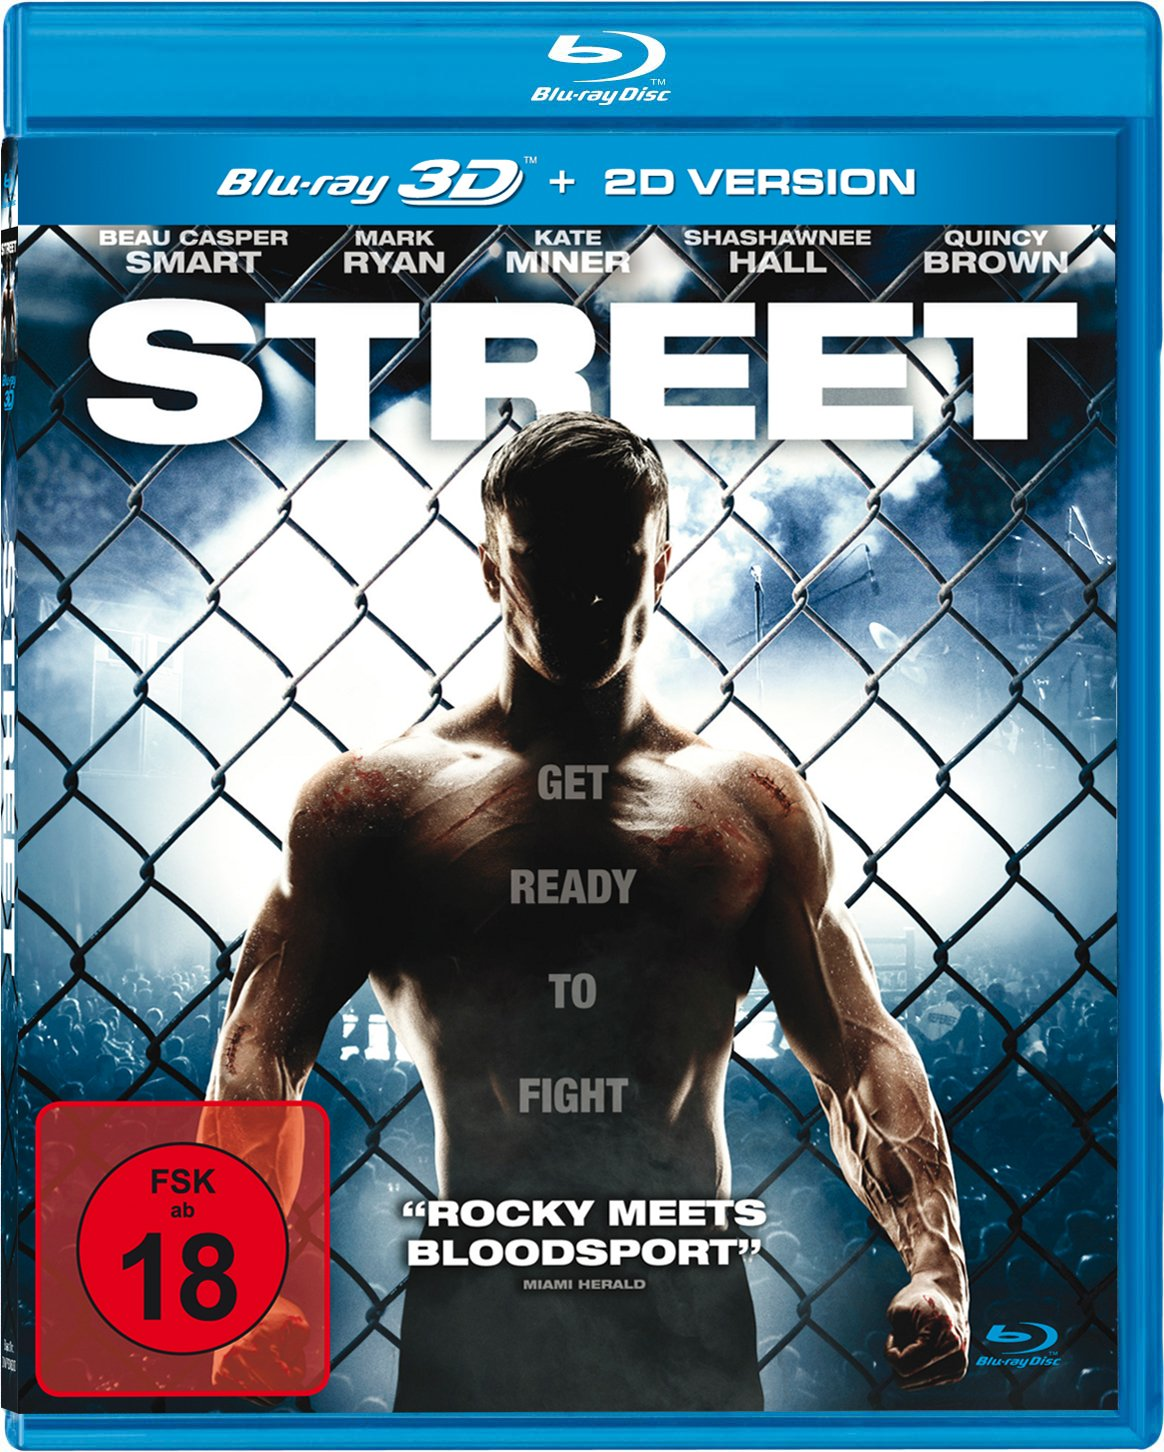 Street - Get Ready To Fight inkl. 2D-Version Italia Blu-ray: Amazon.es: Smart, Beau, Ryan, Mark, Miner, Kate, Hall, Shashawnee, Brown, Quincy, May, Bradford, Smart, Beau, Ryan, Mark: Cine y Series TV